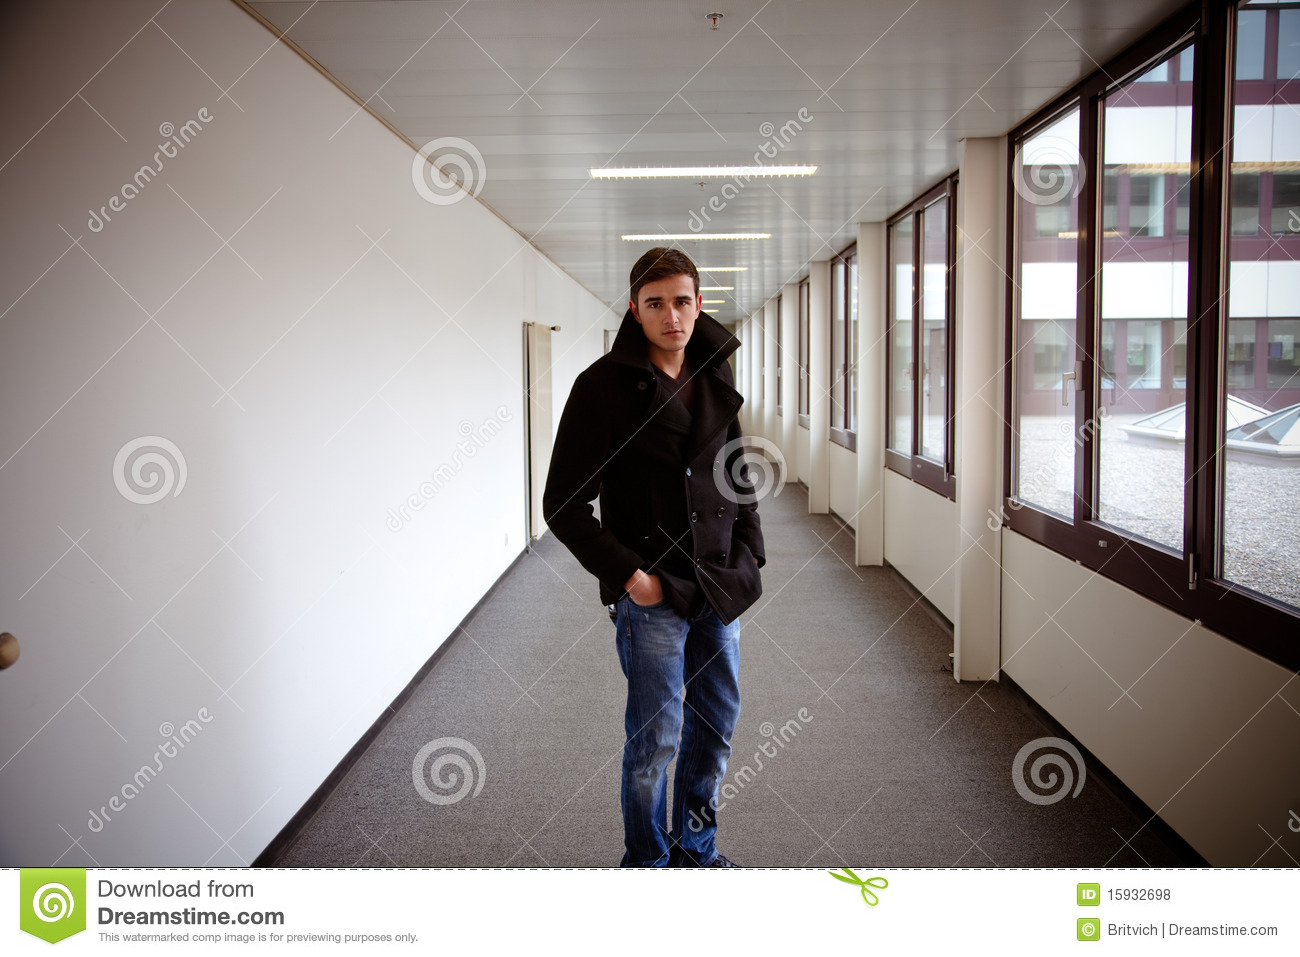 Guy in modern building